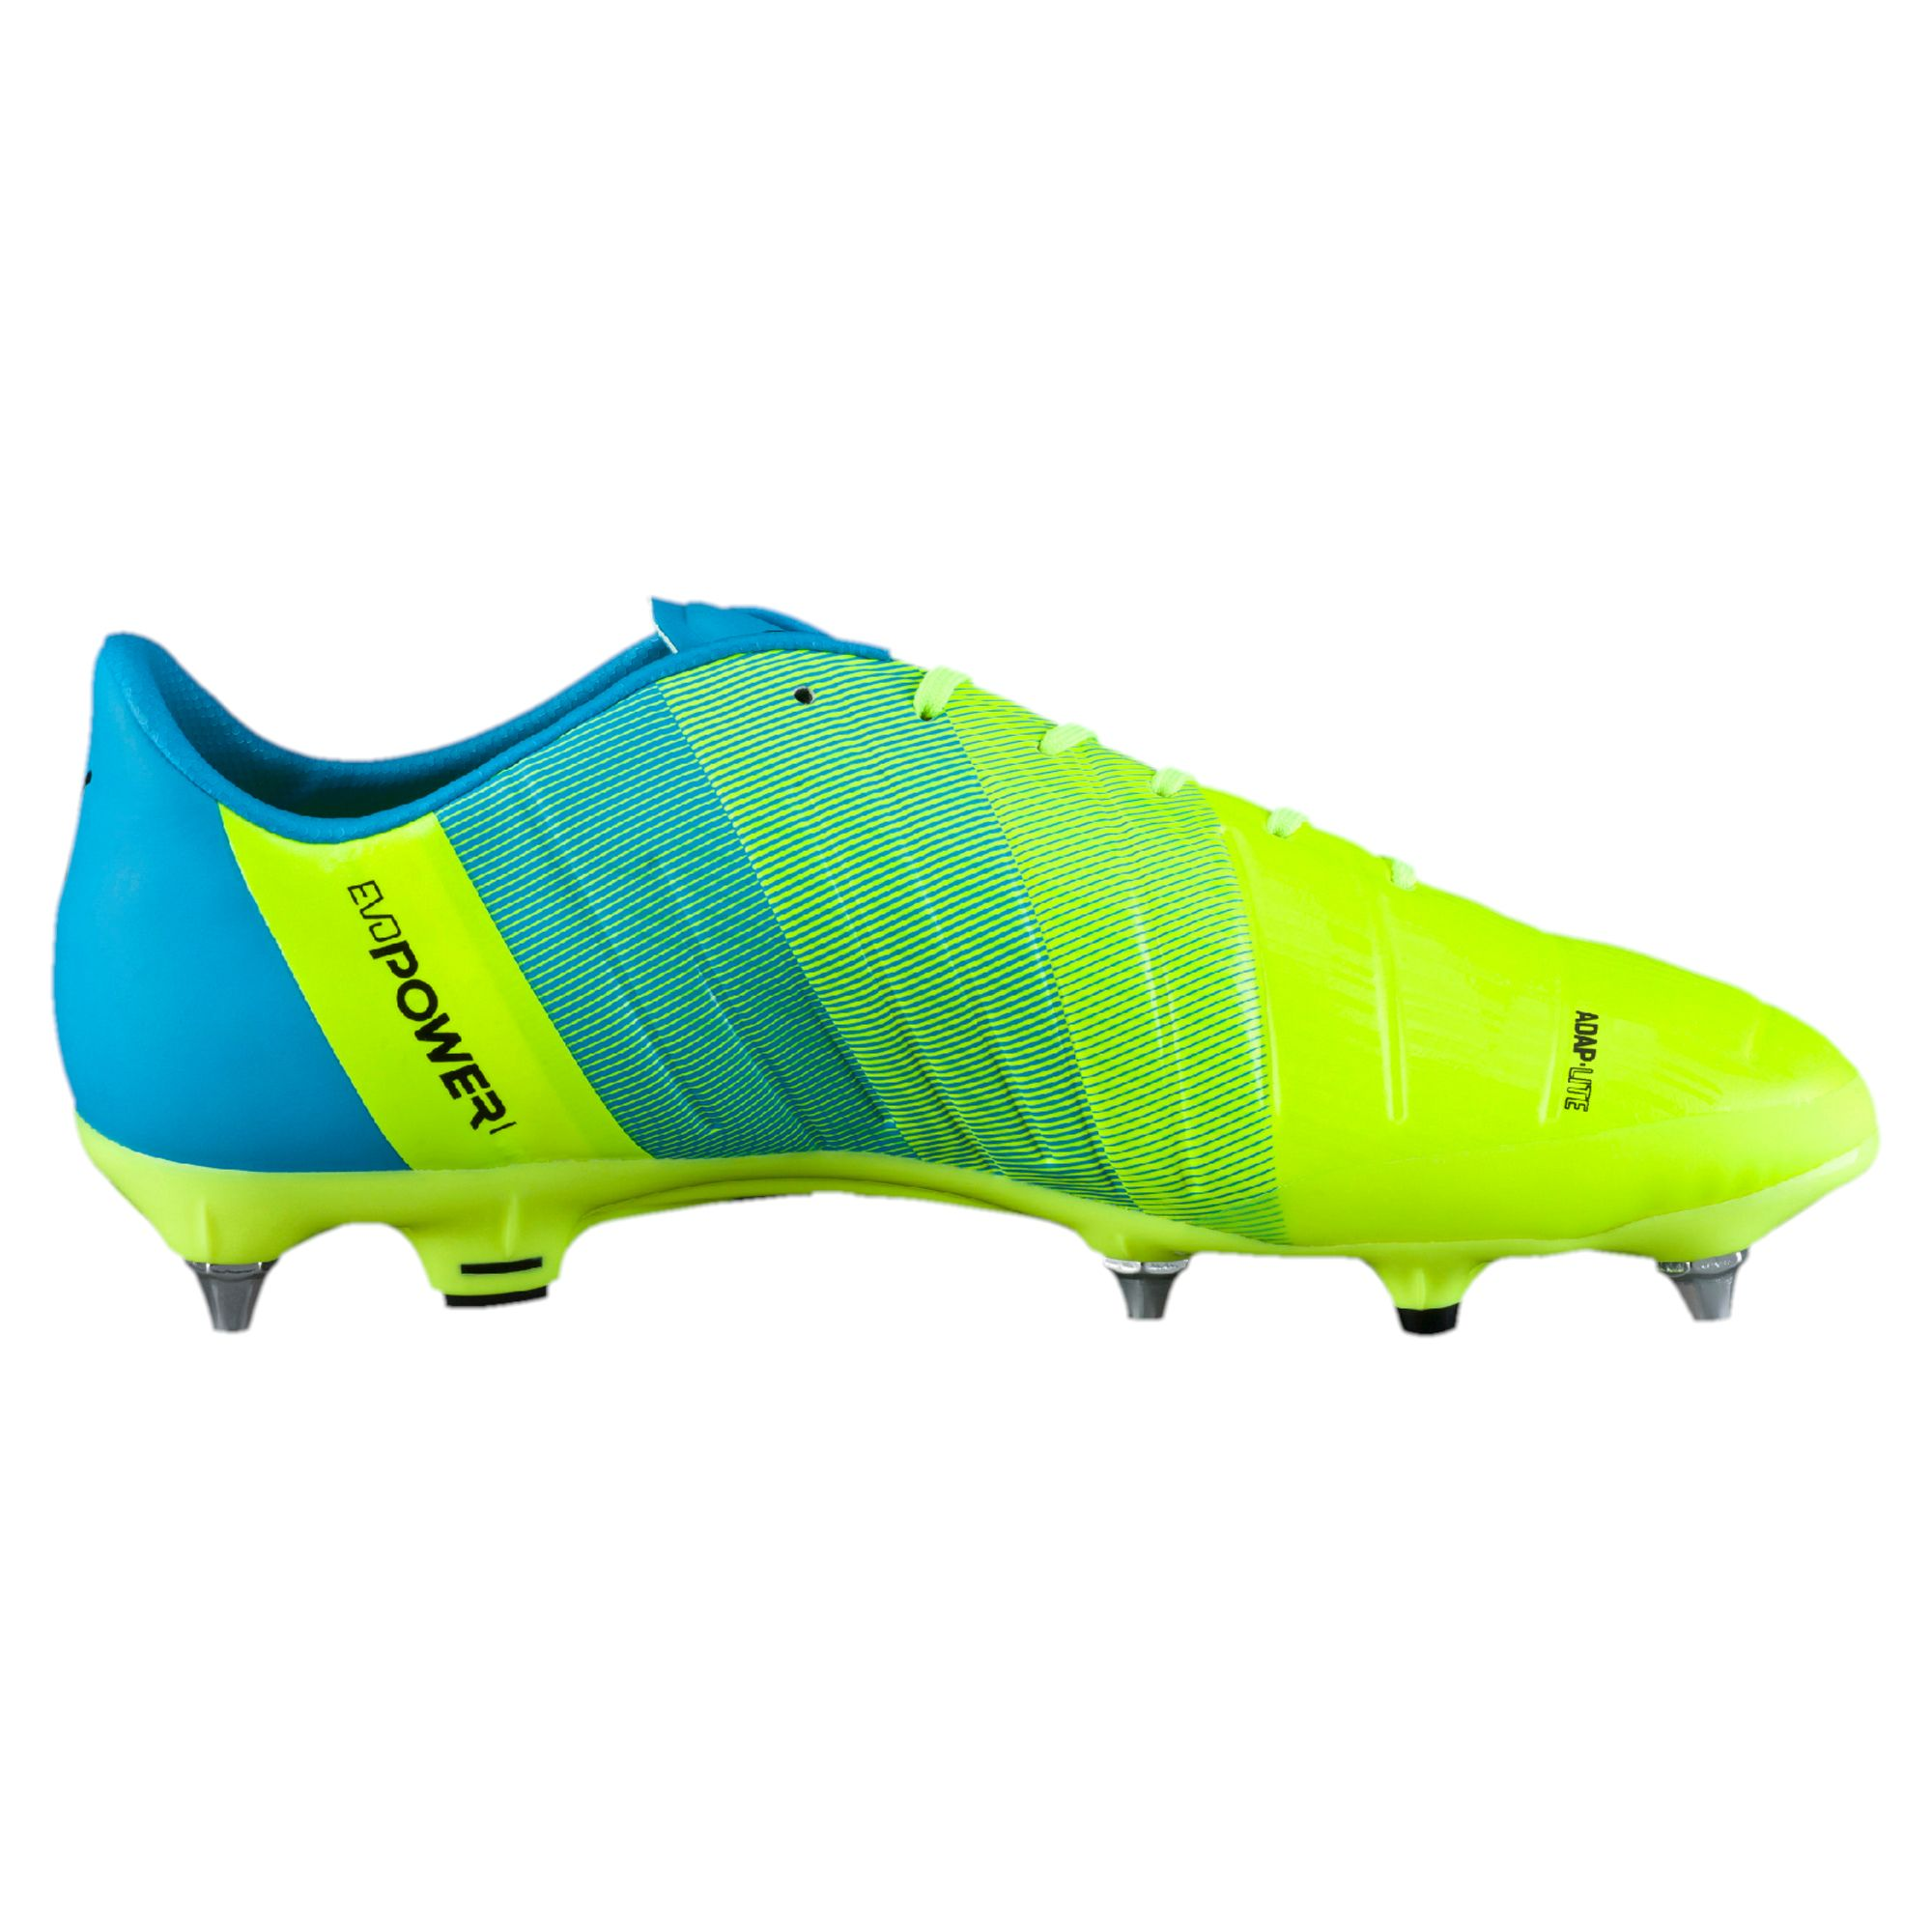 d4d729ec4 PUMA-evoPOWER-1-3-Mixed-SG-Football-Boots-